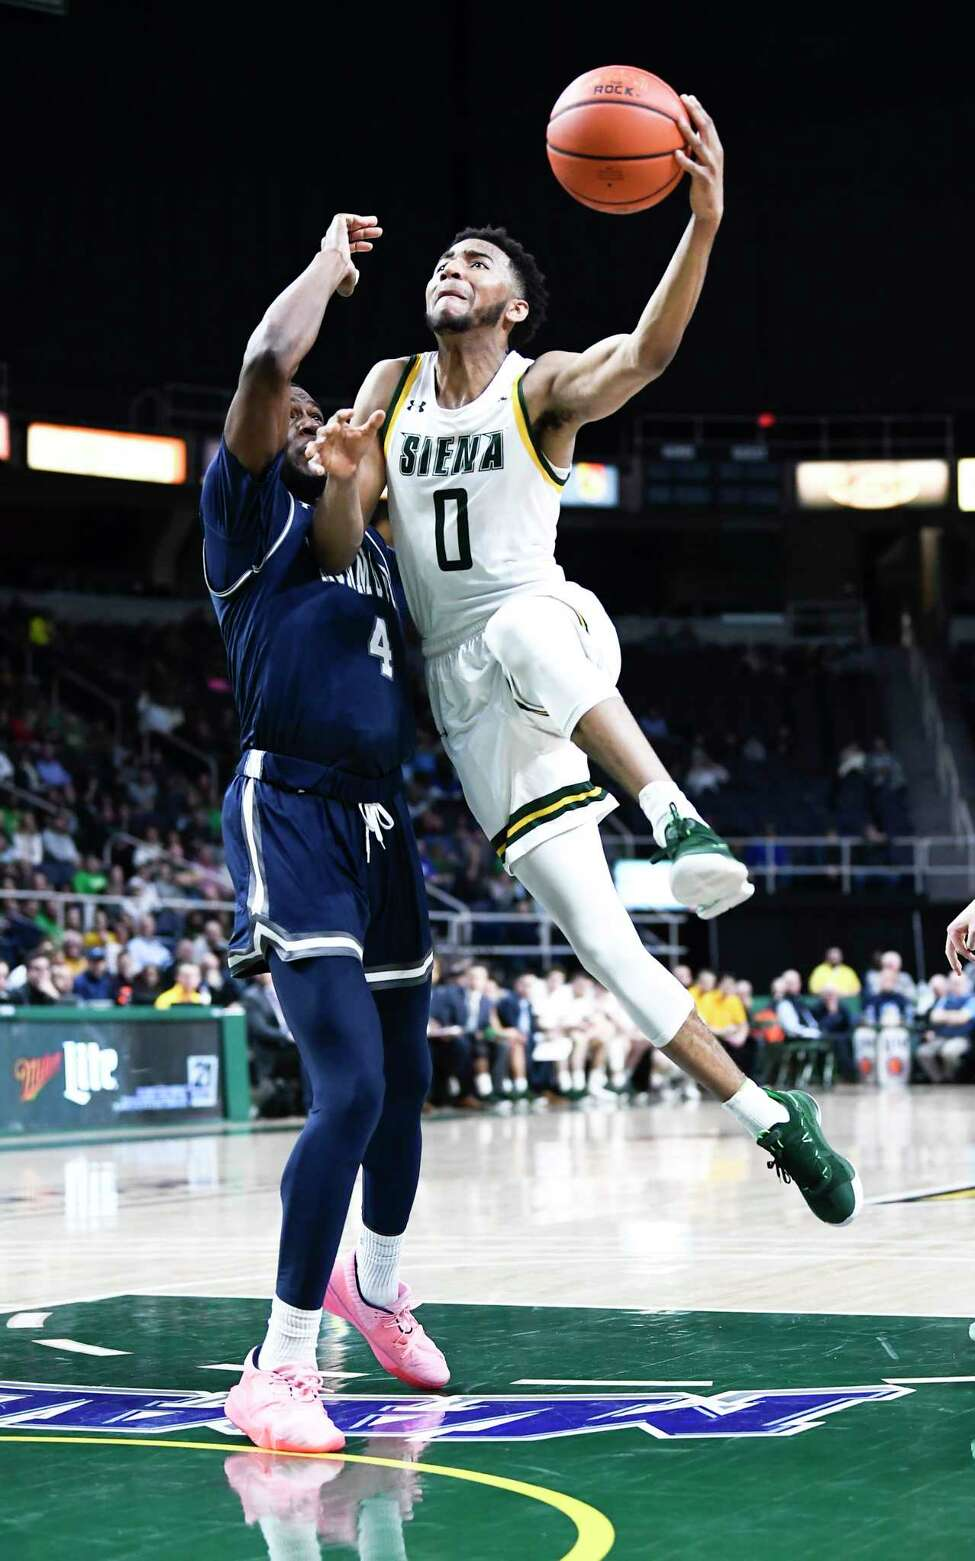 Siena guard Donald Carey (0) scores against Monmouth forward Mustapha Traore (4) during the first half of an NCAA basketball game Friday, Jan. 3, 2020, in Albany, N.Y. (Hans Pennink / Special to the Times Union) ORG XMIT: 010420_siena_HP104